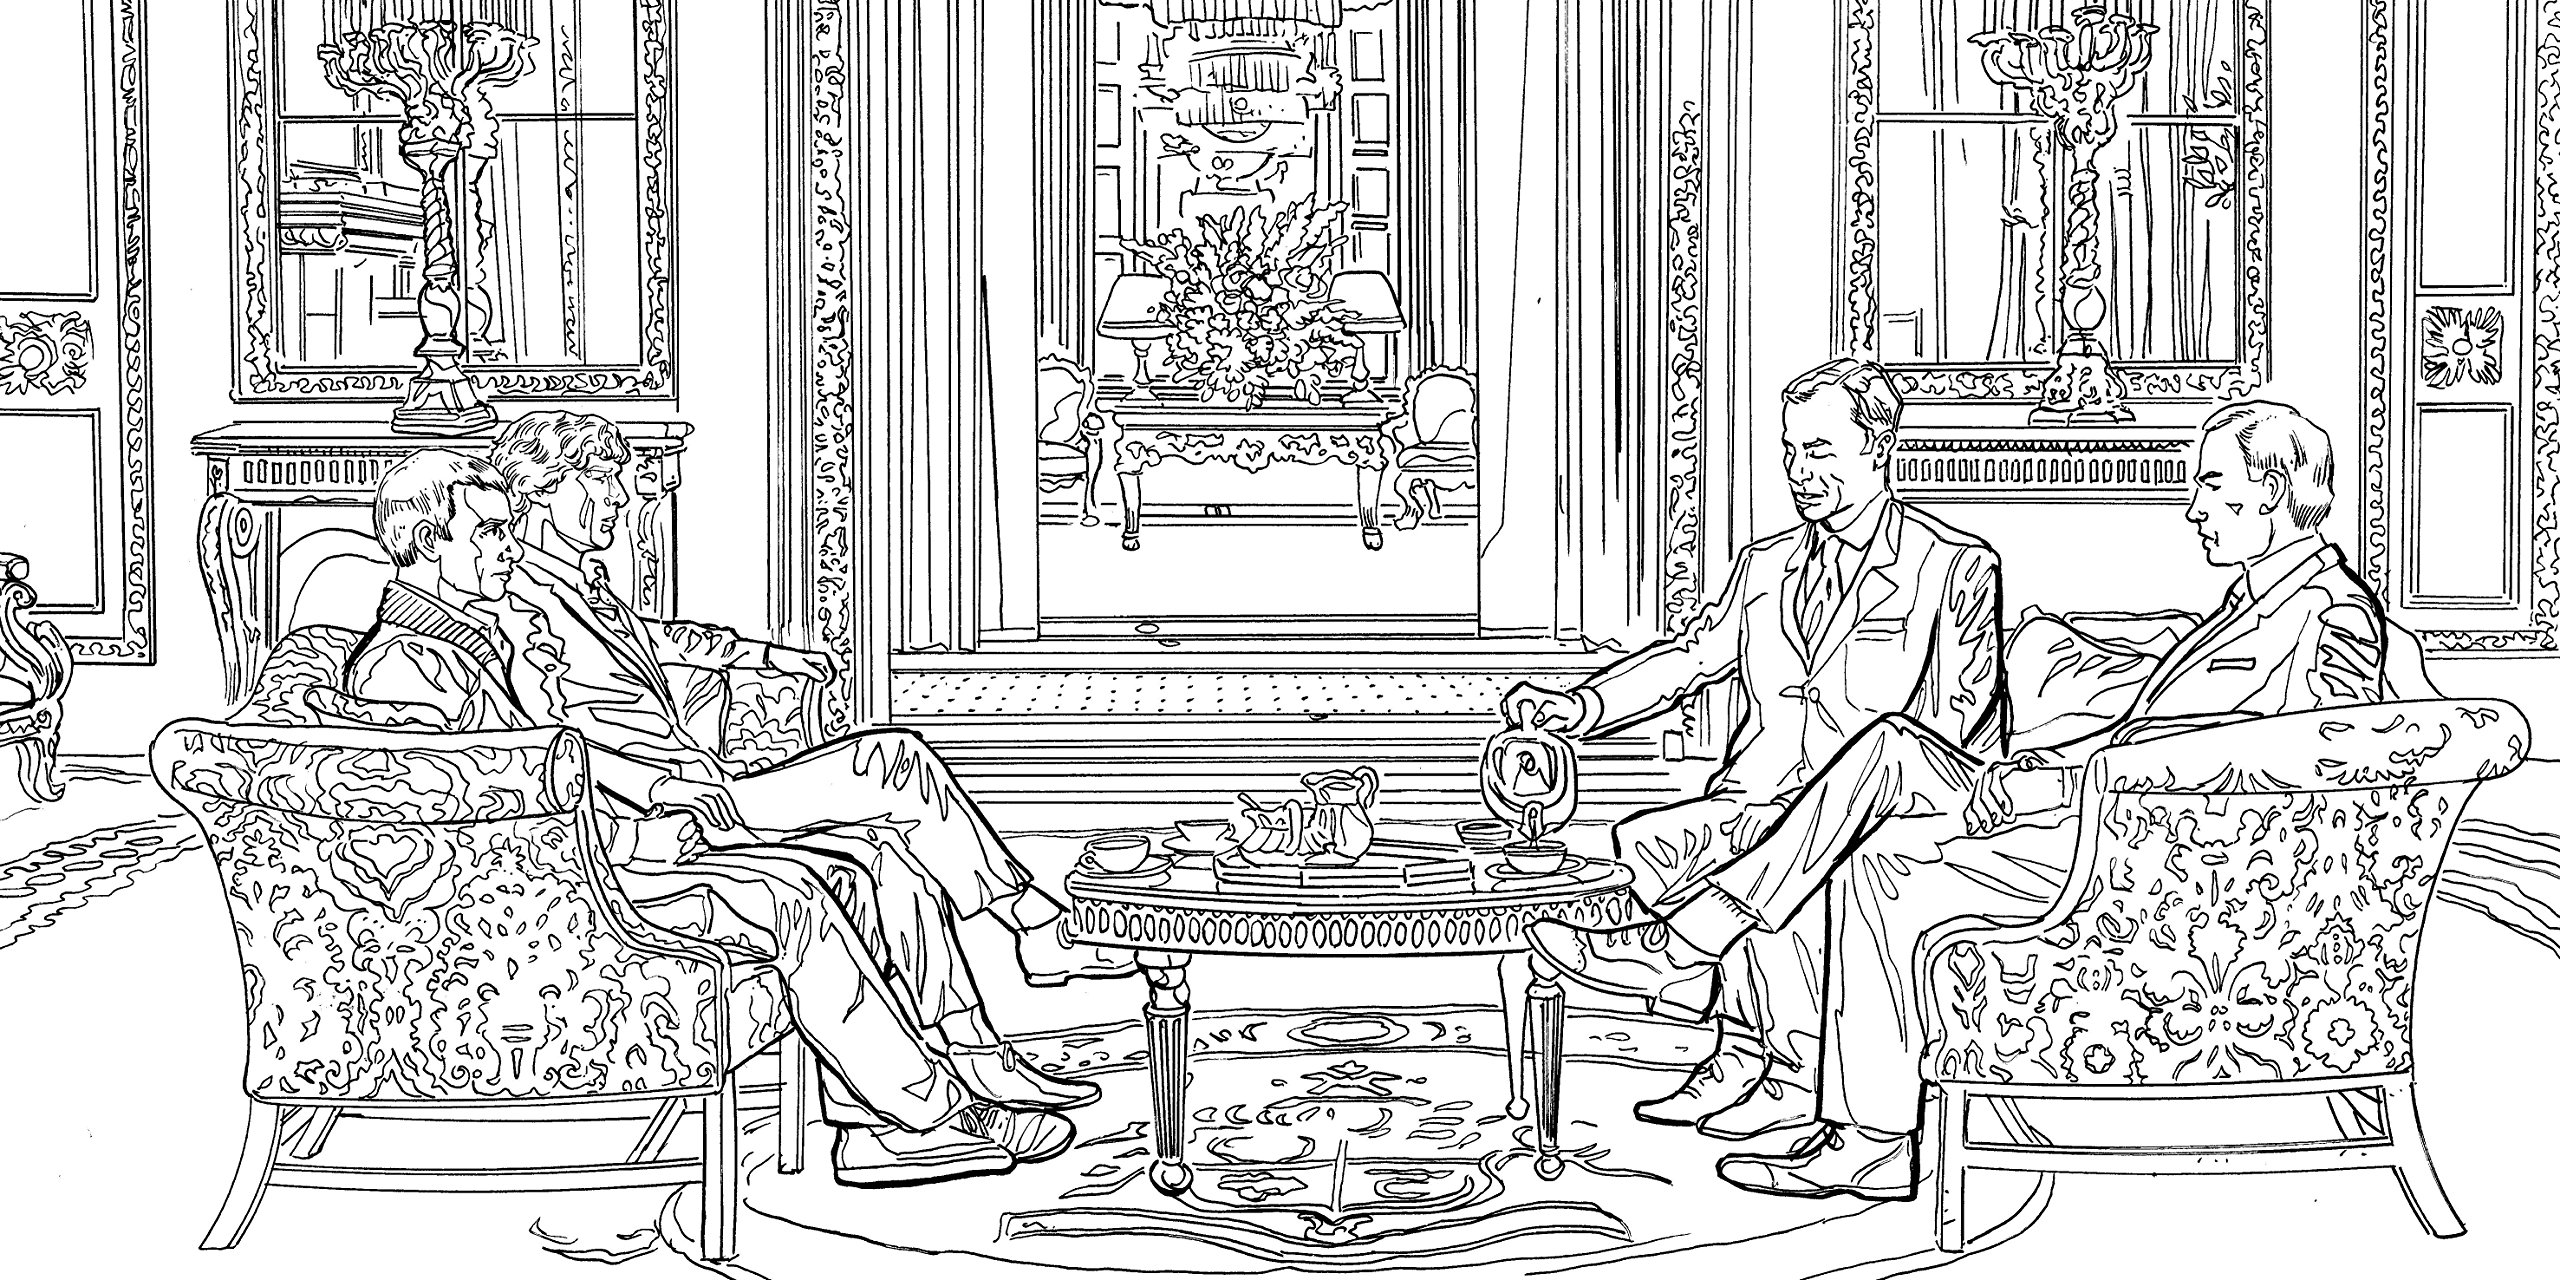 Buy Sherlock The Mind Palace Official Colouring Book Online At Low Prices In India